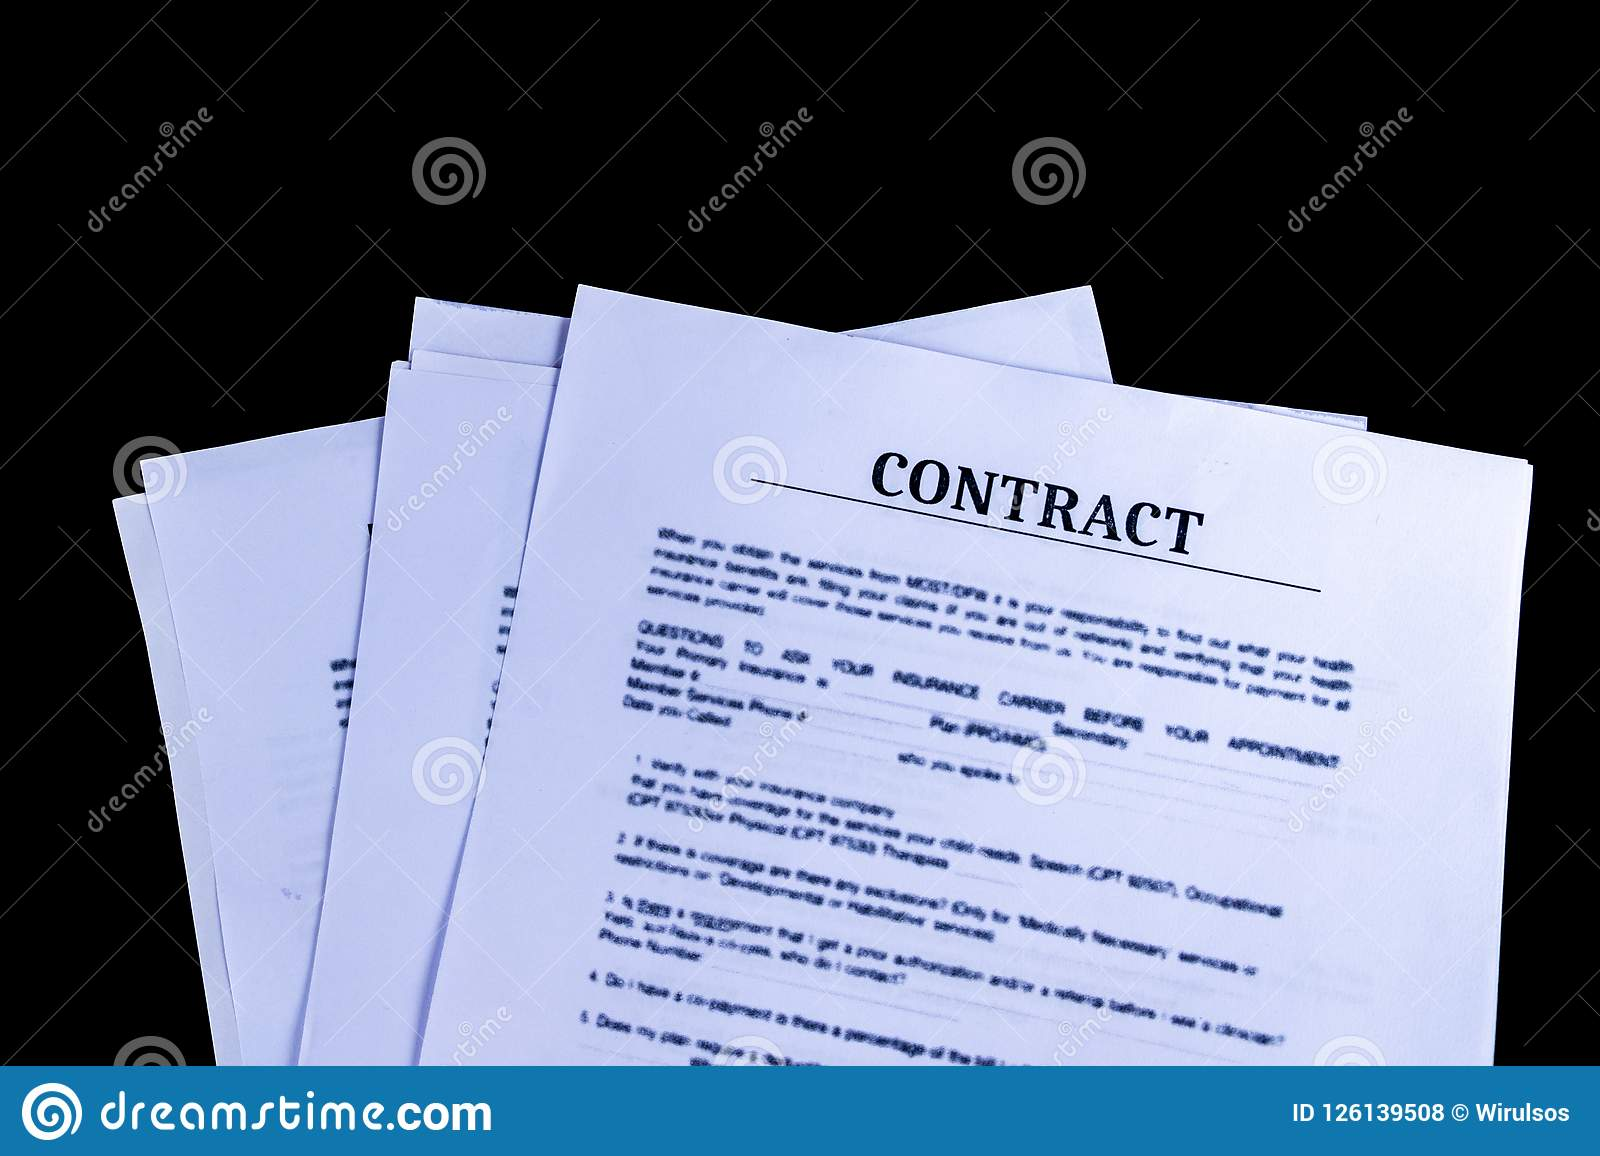 legal contract agreement documents papers with black background